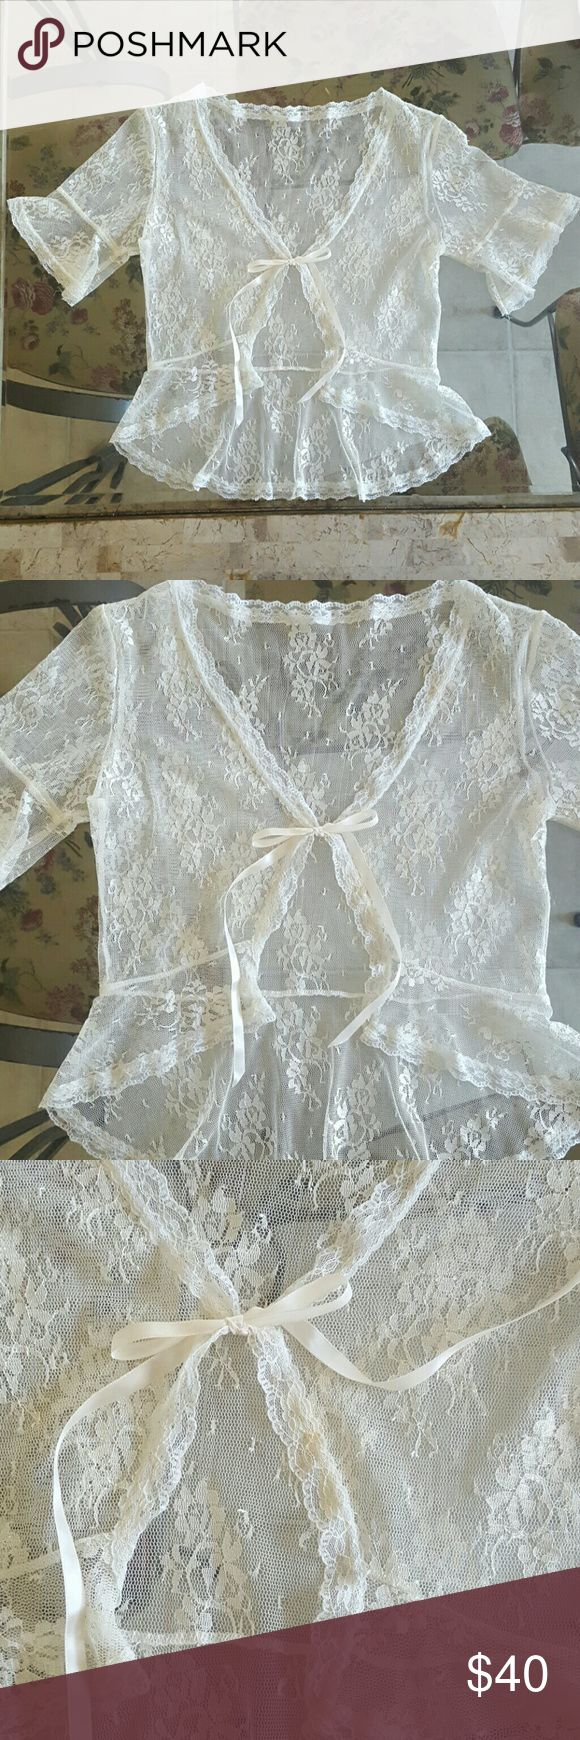 Beautiful vintage American Rag lace shawl/top Bought it in Macys with that small stain which can be removed, the brand is American Rag I removed because it is see through. Planned to use it once but never did. Vintage looking shawl!!! Great for a wedding dress or under tanks!! American Rag Tops